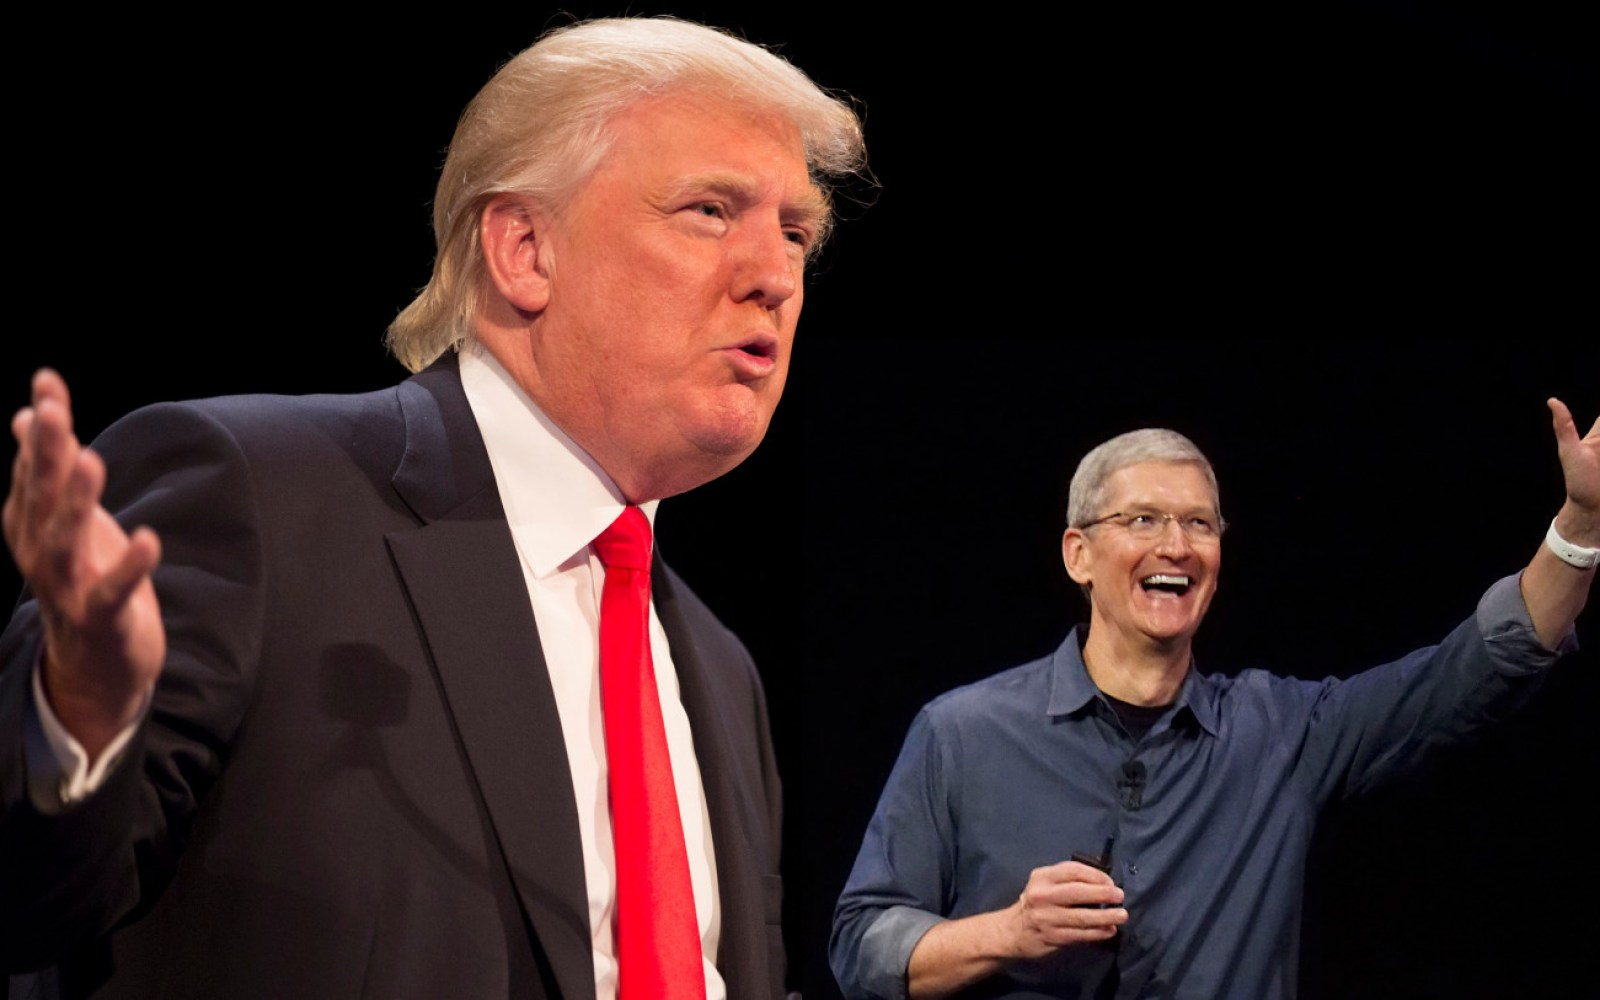 Apple takes stance against Trump by withholding financial & tech aid from upcoming GOP convention